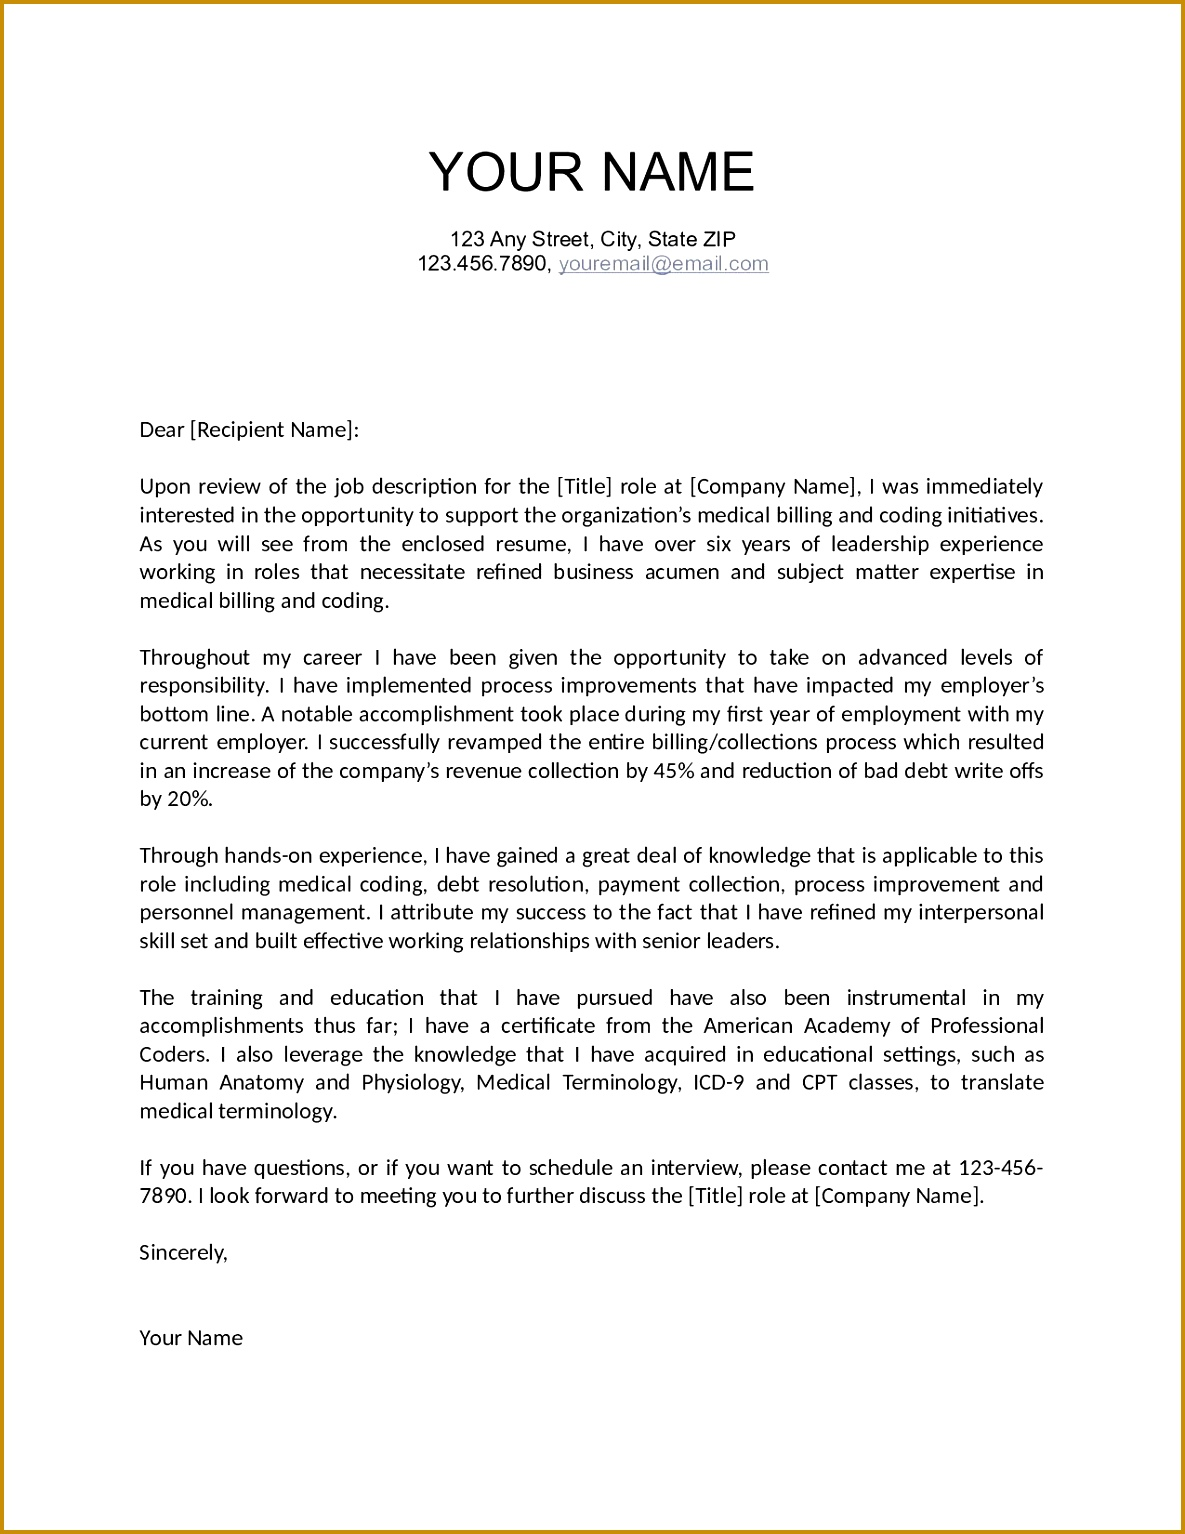 Best Cover Letters Unique Cover Letter Examples for Internship Beautiful Job Letter 0d 15341185